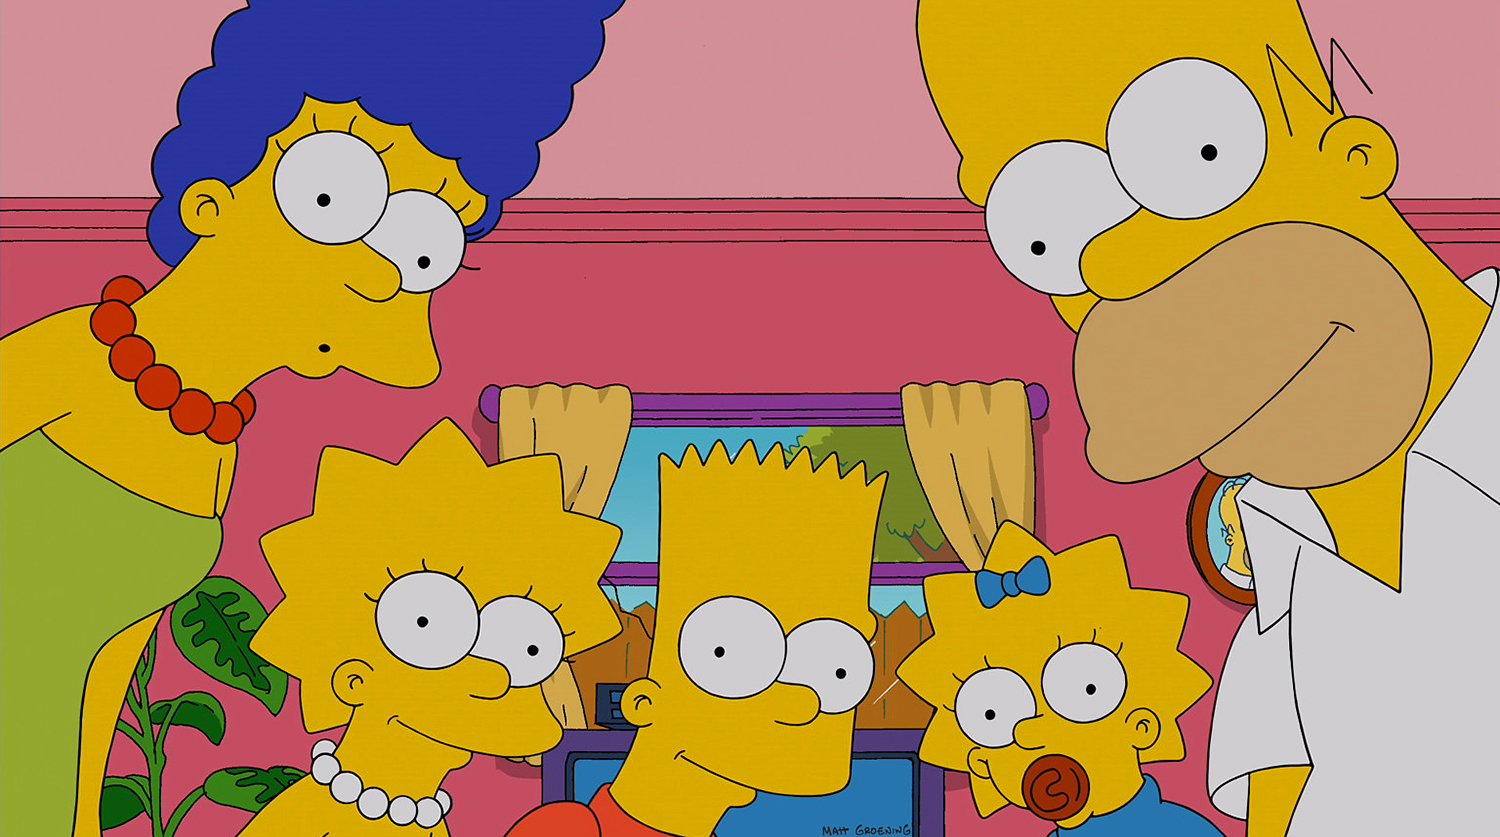 an introduction to the origins and history of the simpsons